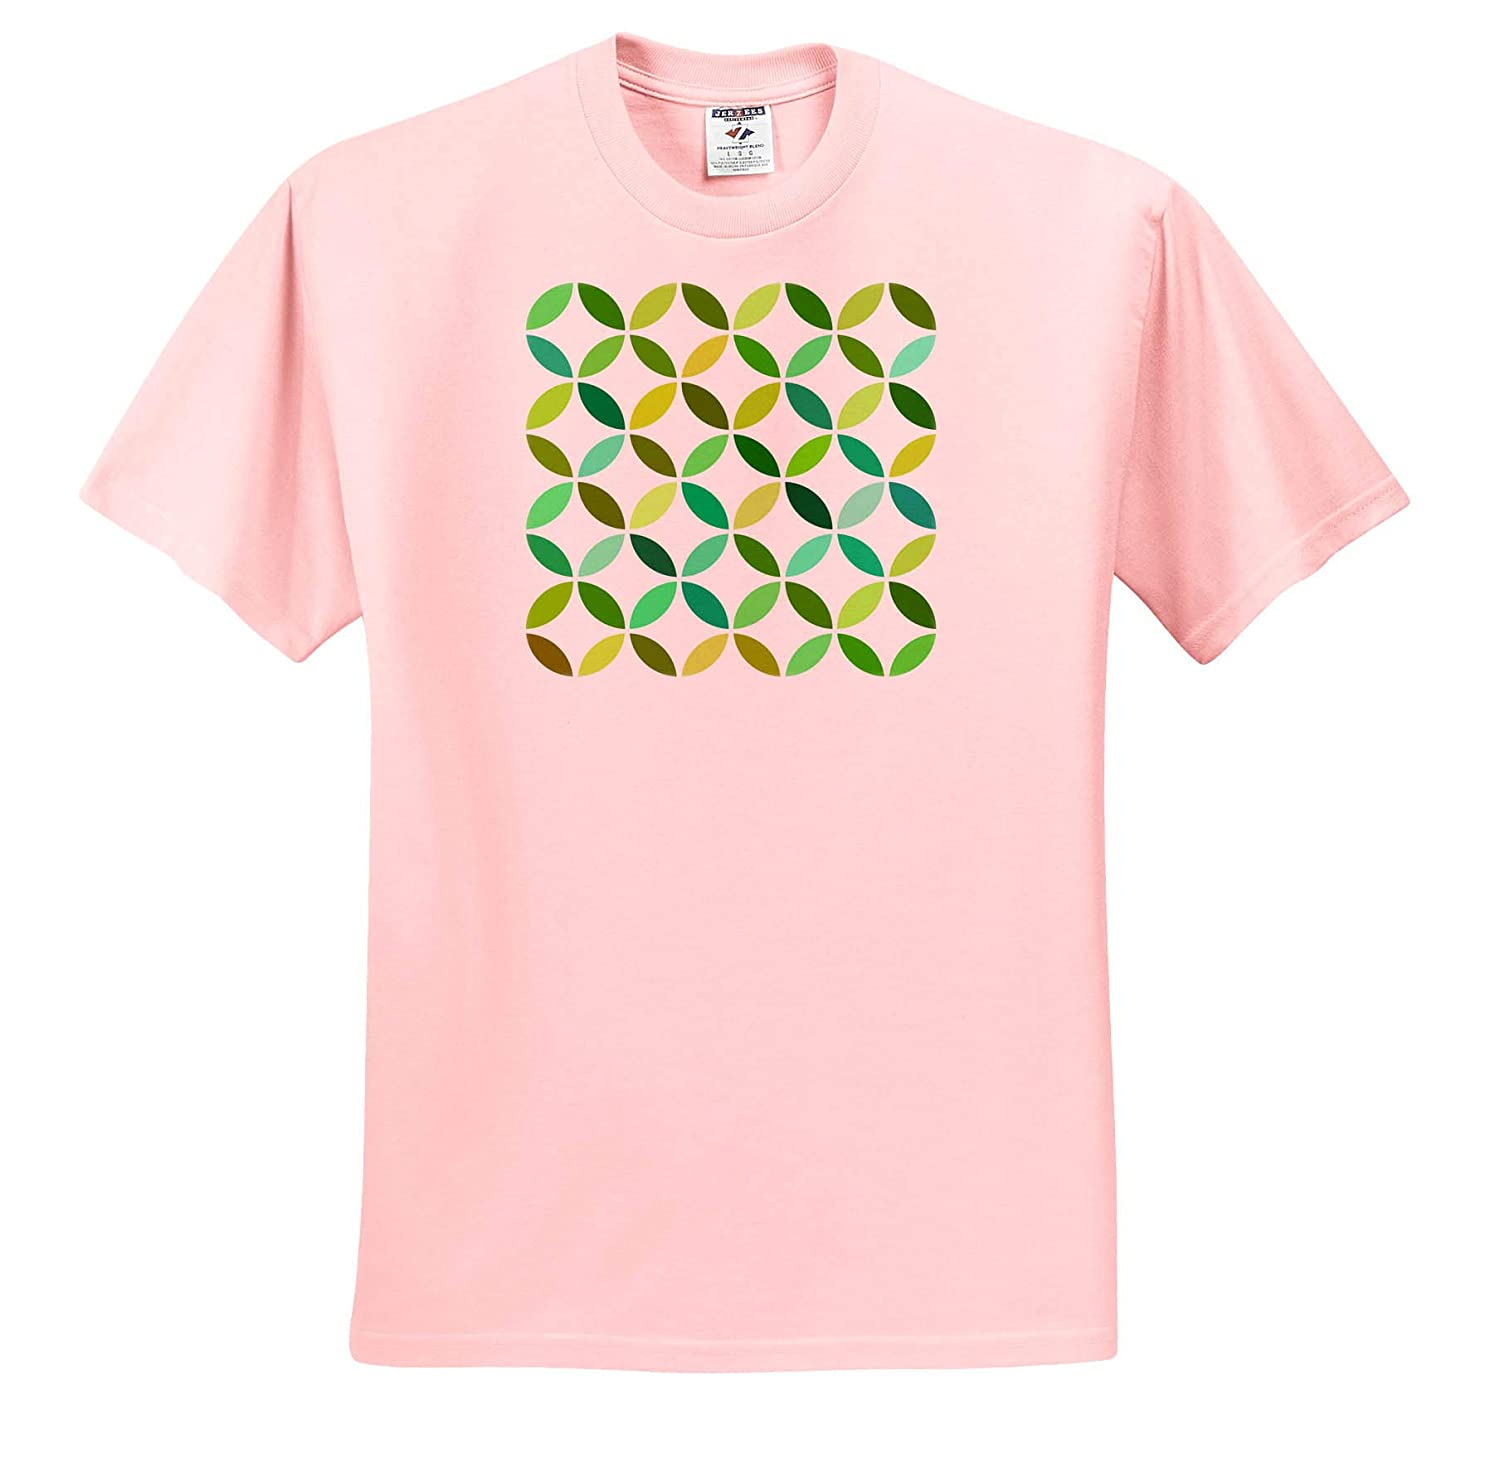 - T-Shirts 3dRose Natalie Paskell Geometric Designs Interlinking Circles in Contrasting Greens and White